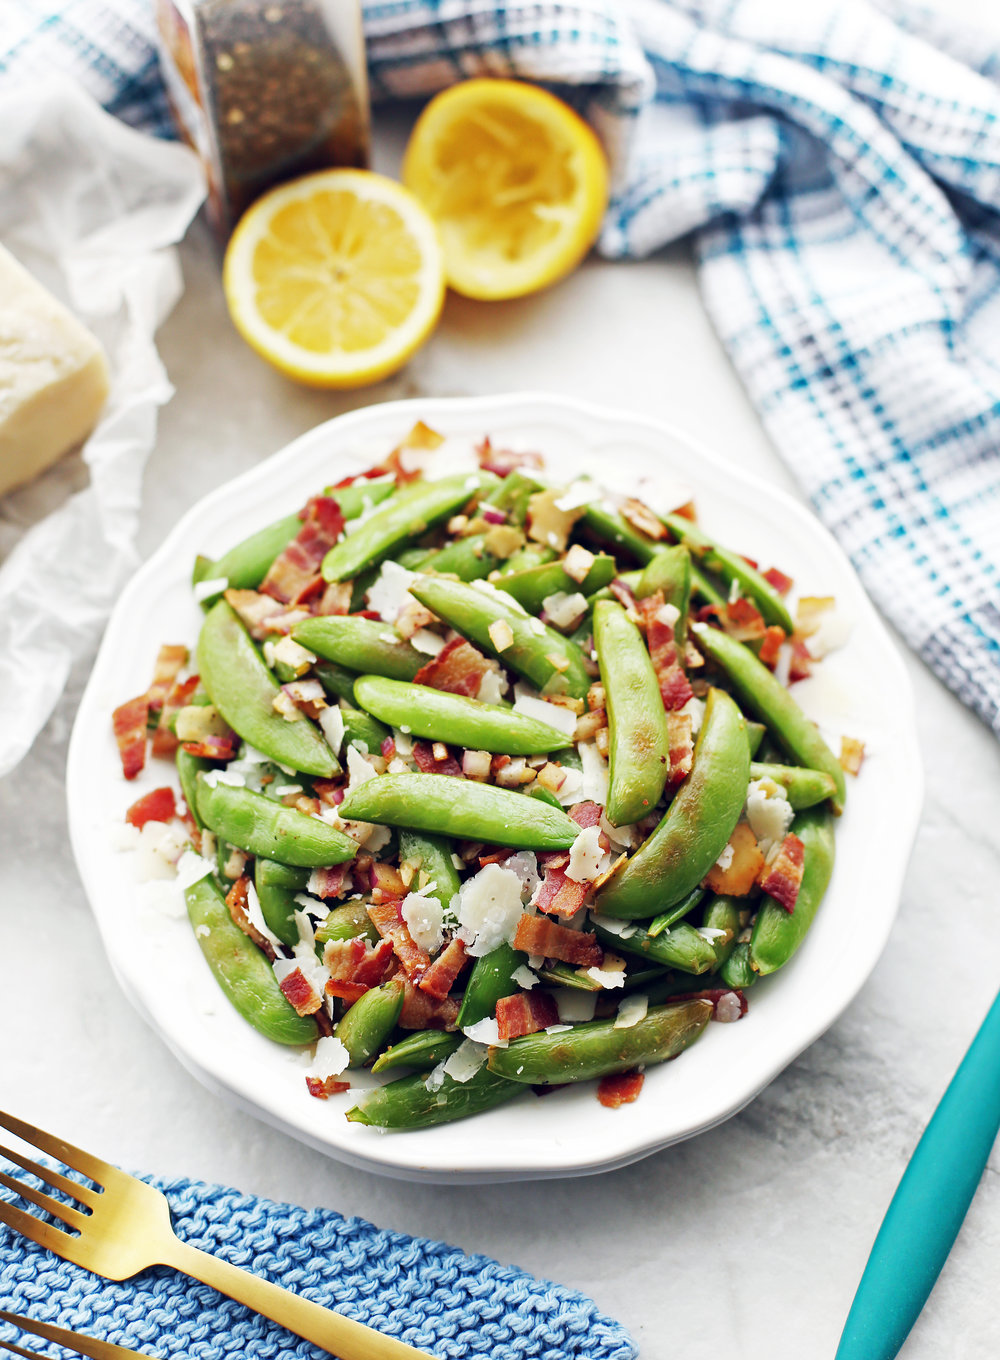 Sugar snap peas with bacon and parmesan piled on a white plate.